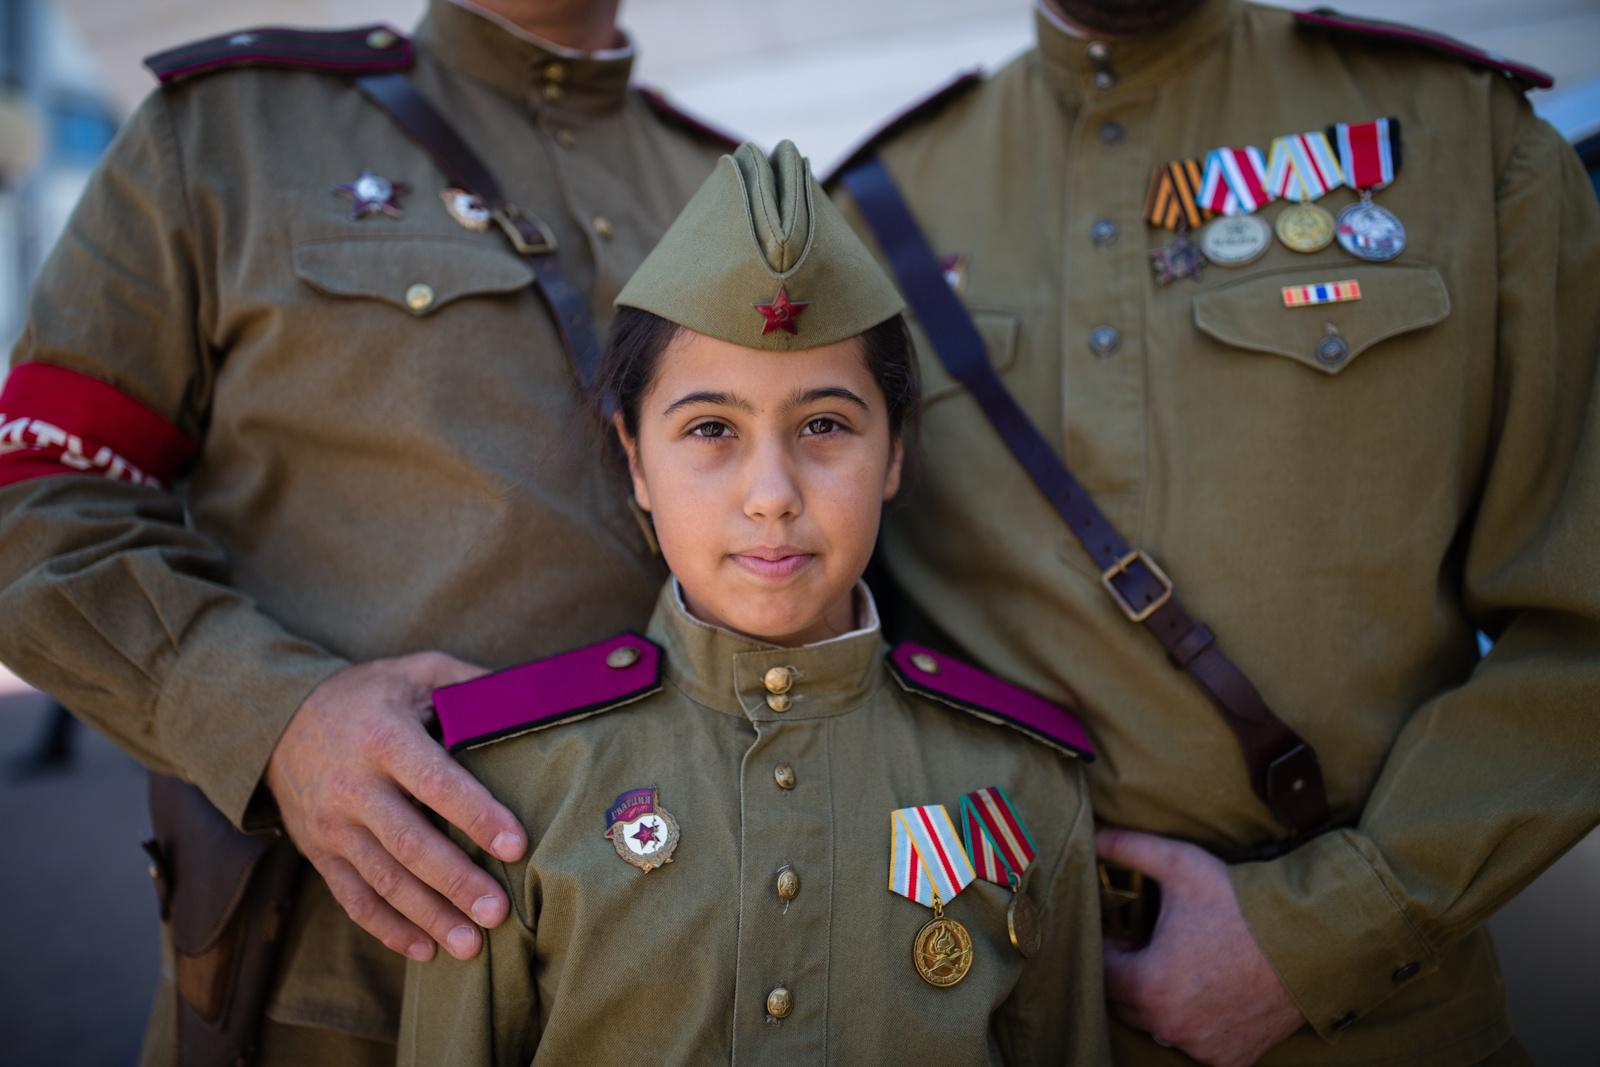 ASHDOD, ISRAEL - MAY 07, 2016: A girl wearing a Red Army uniform poses for a portrait during an event in remembrance of the upcoming Victory Day, marking the anniversary of the Allied victory over Nazi Germany, in the southern city of Ashdod, May 7, 2016.